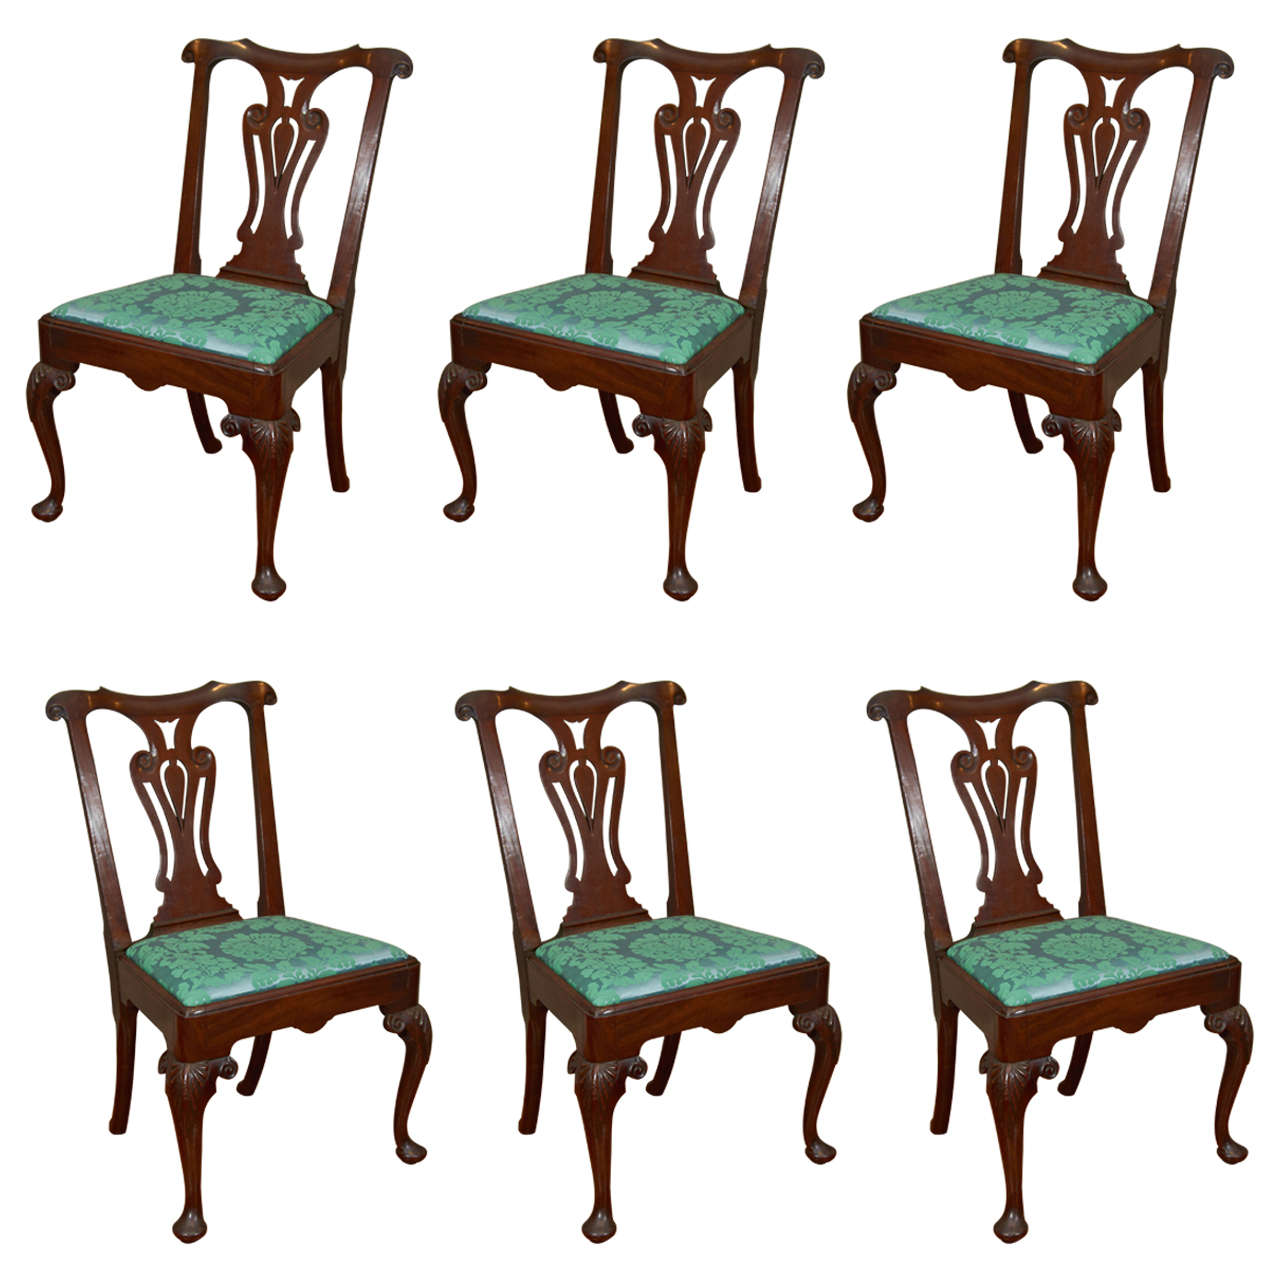 Miraculous Set Of Eight 19Th Century Mahogany Dining Chairs Ocoug Best Dining Table And Chair Ideas Images Ocougorg